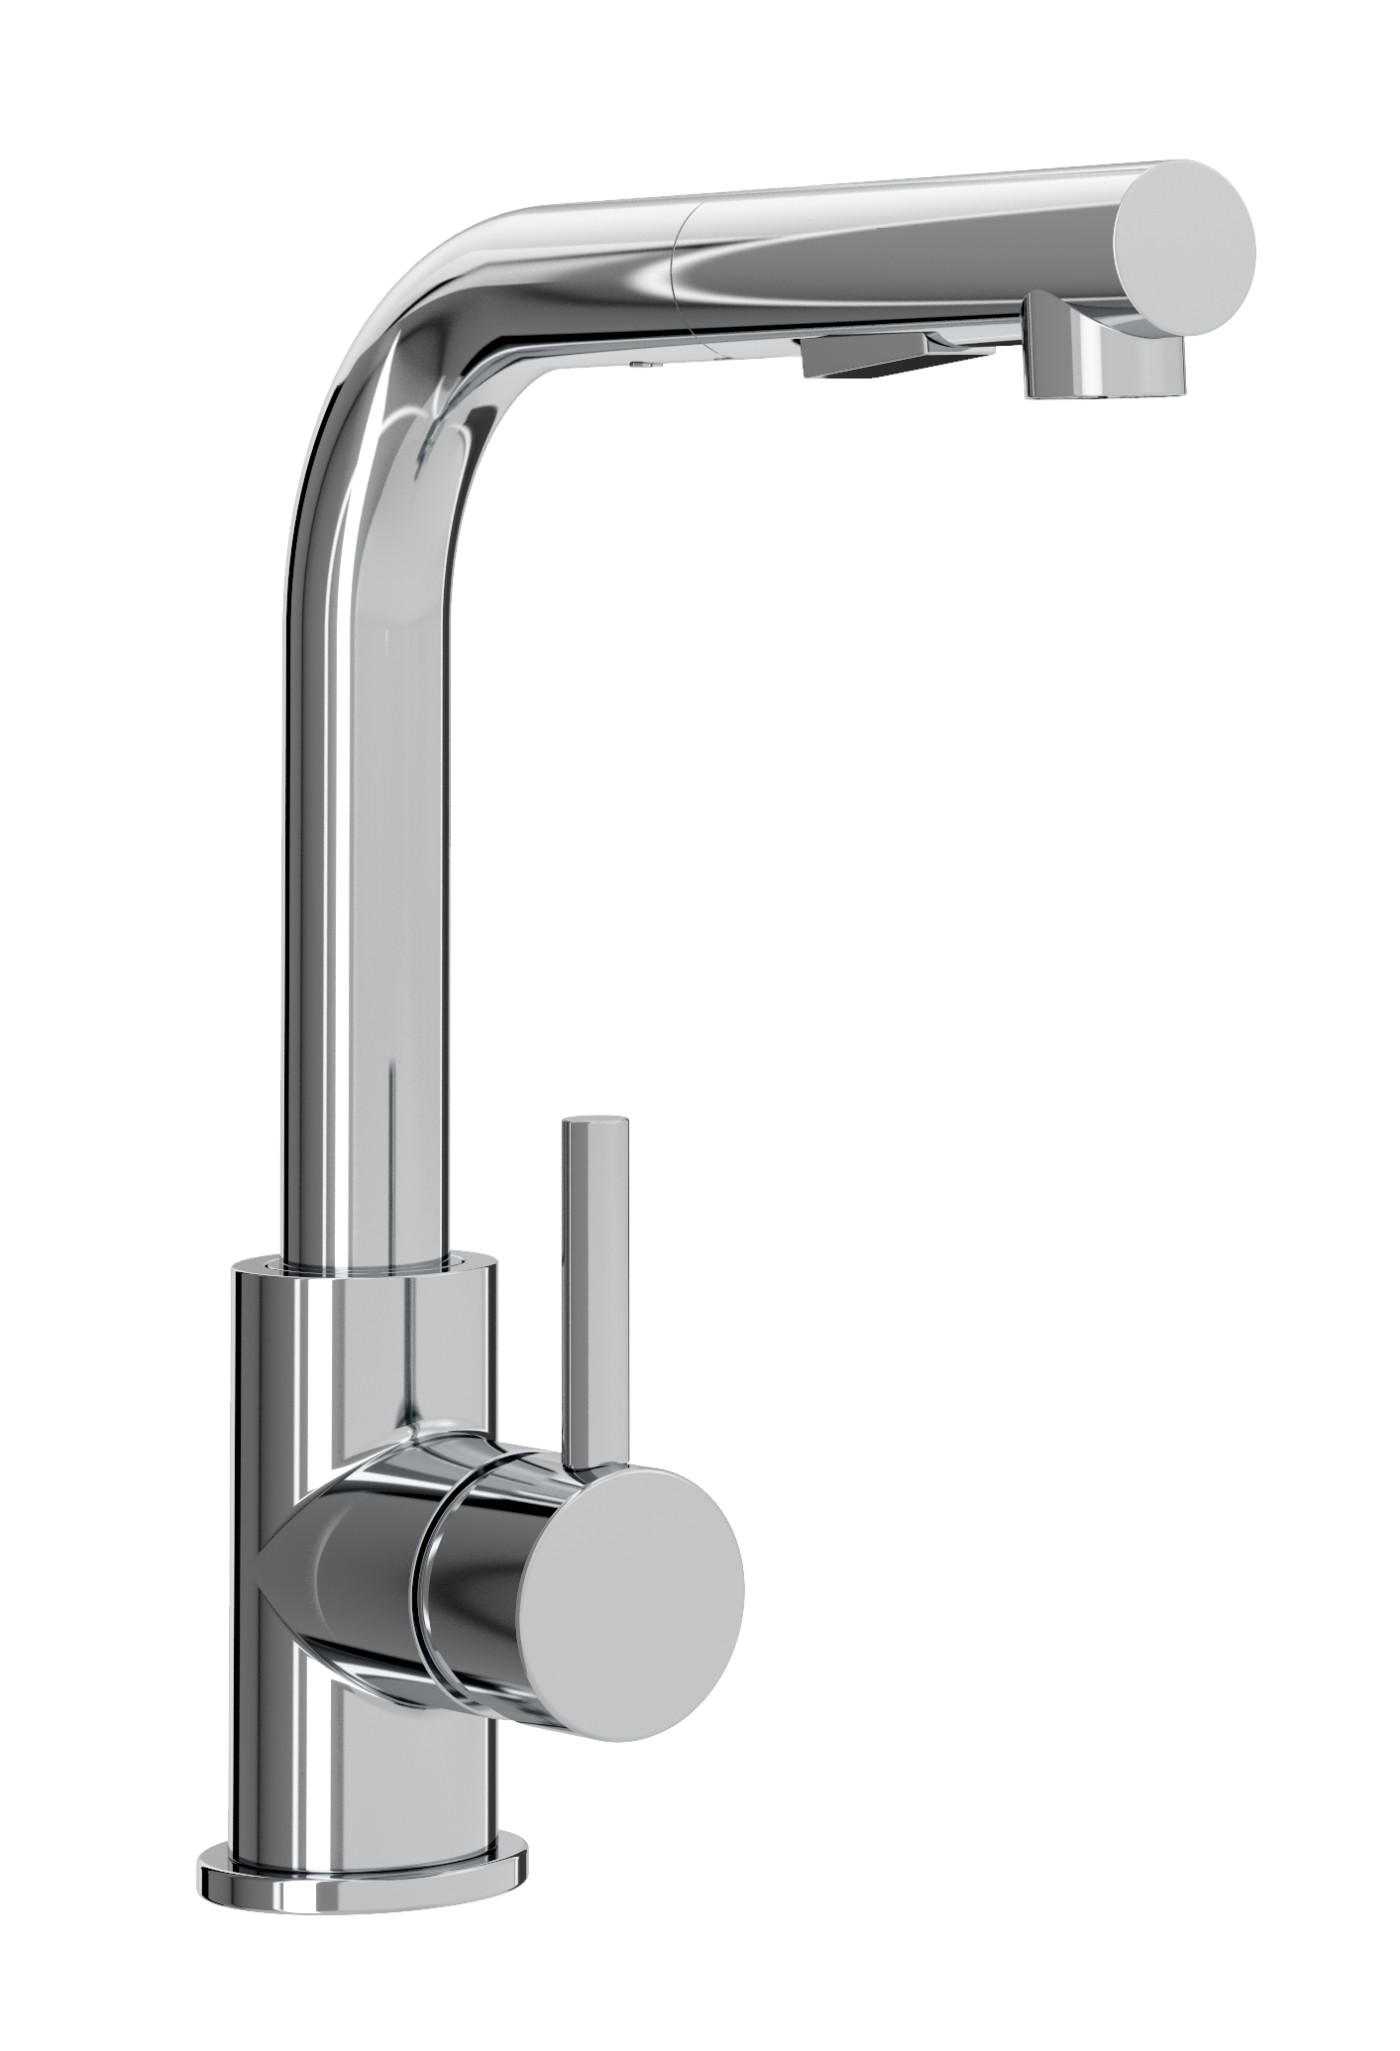 Sink Mixer with Pull Out Handset